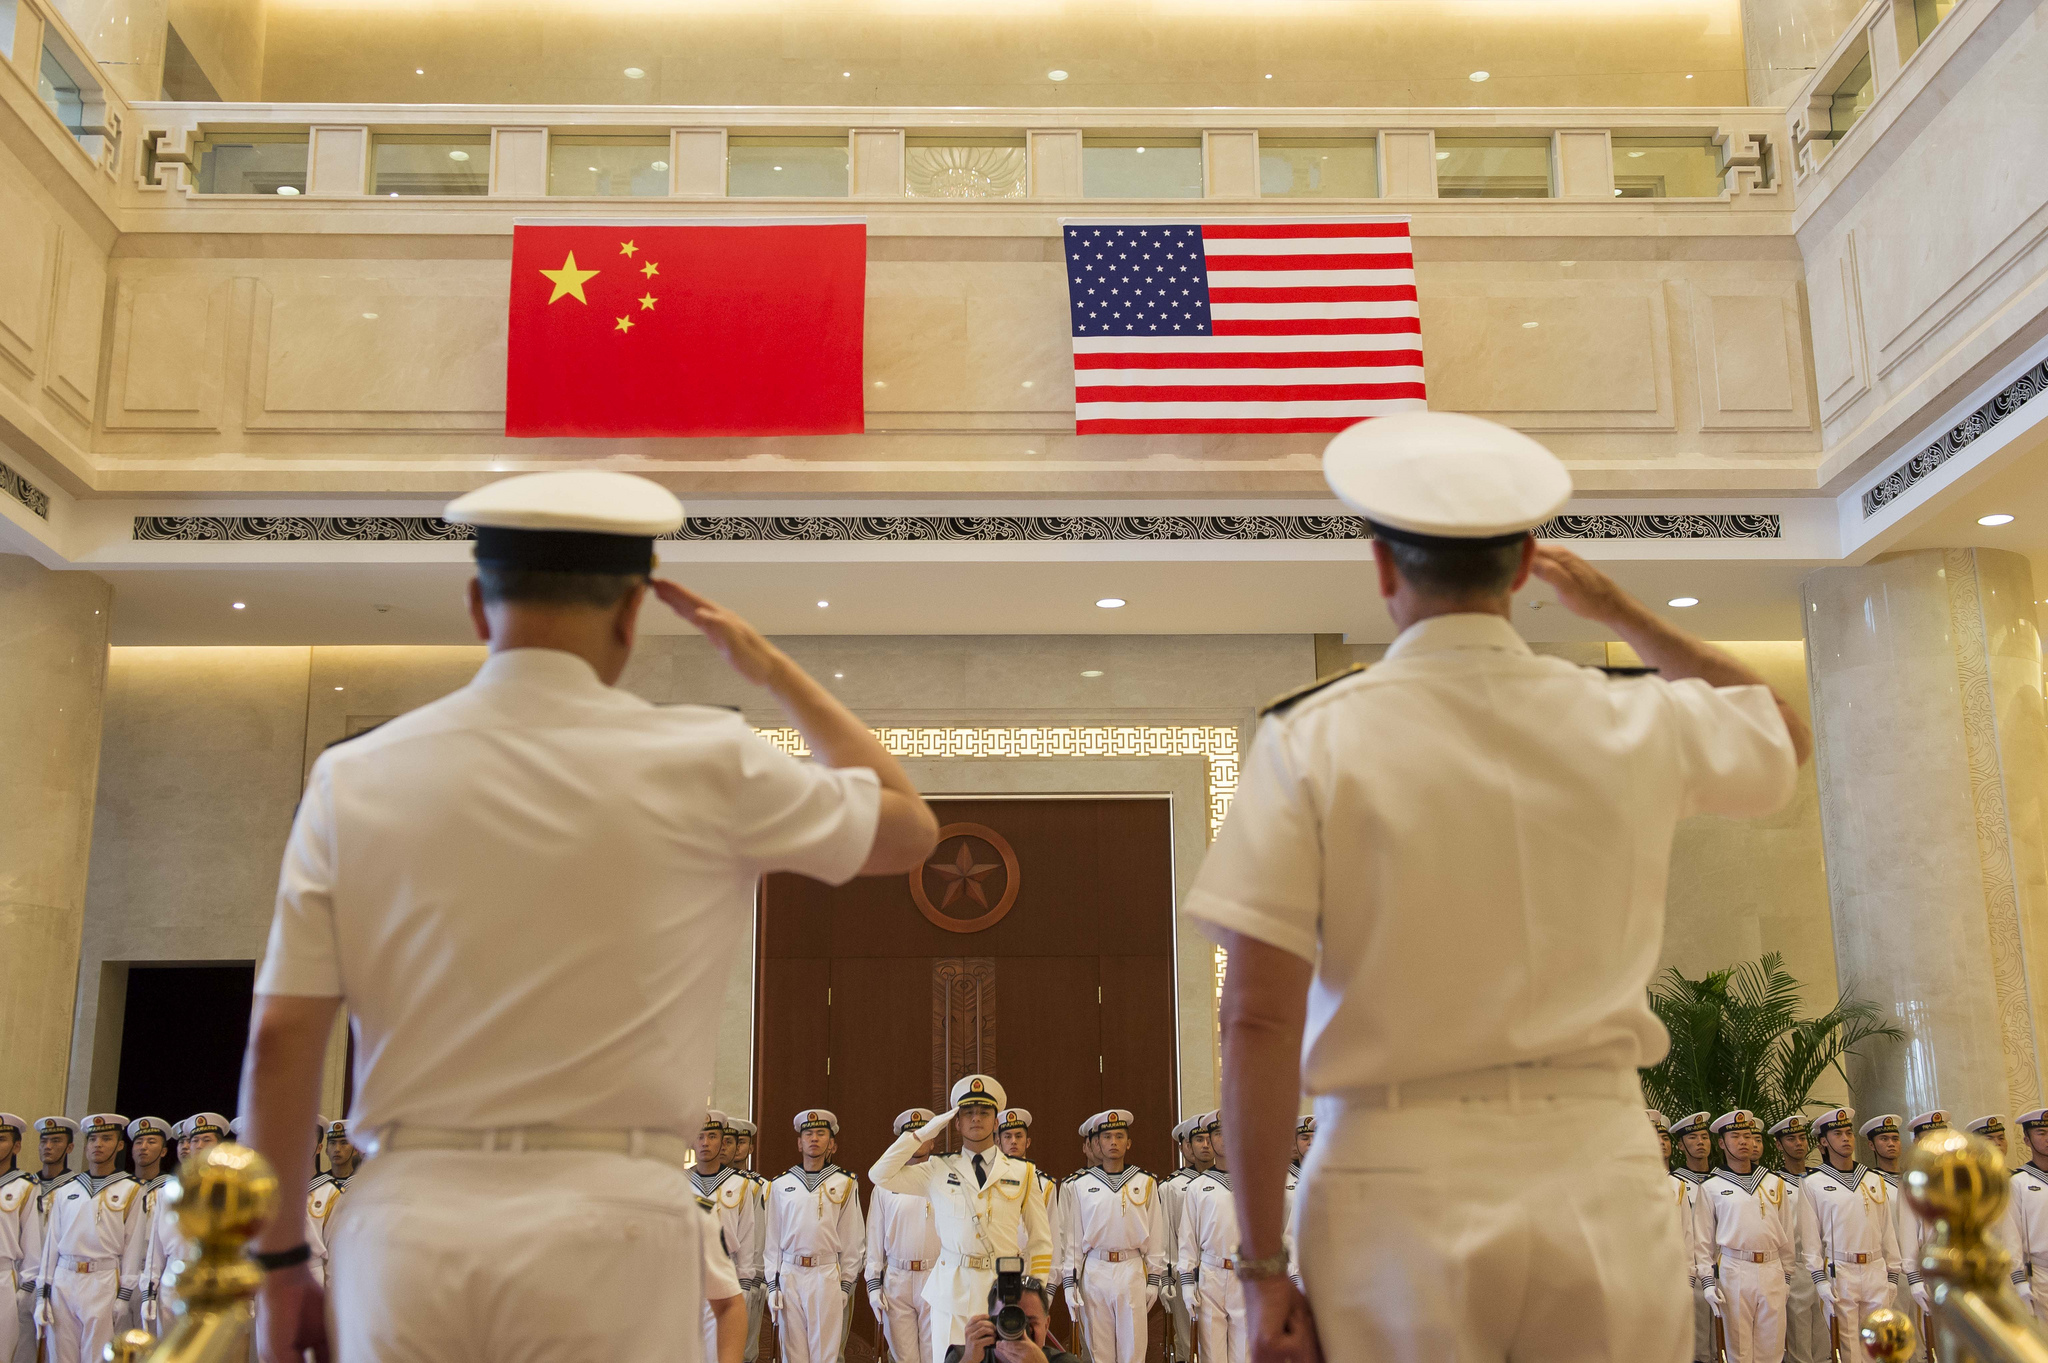 China's Chief Naval Commander Adm. Wu Shengli and U.S. Chief of Naval Operations Adm. Jonathan Greenert salute in Beijing during a July meeting. (U.S. Navy photo by Chief Mass Communication Specialist Peter D. Lawlor/Released)